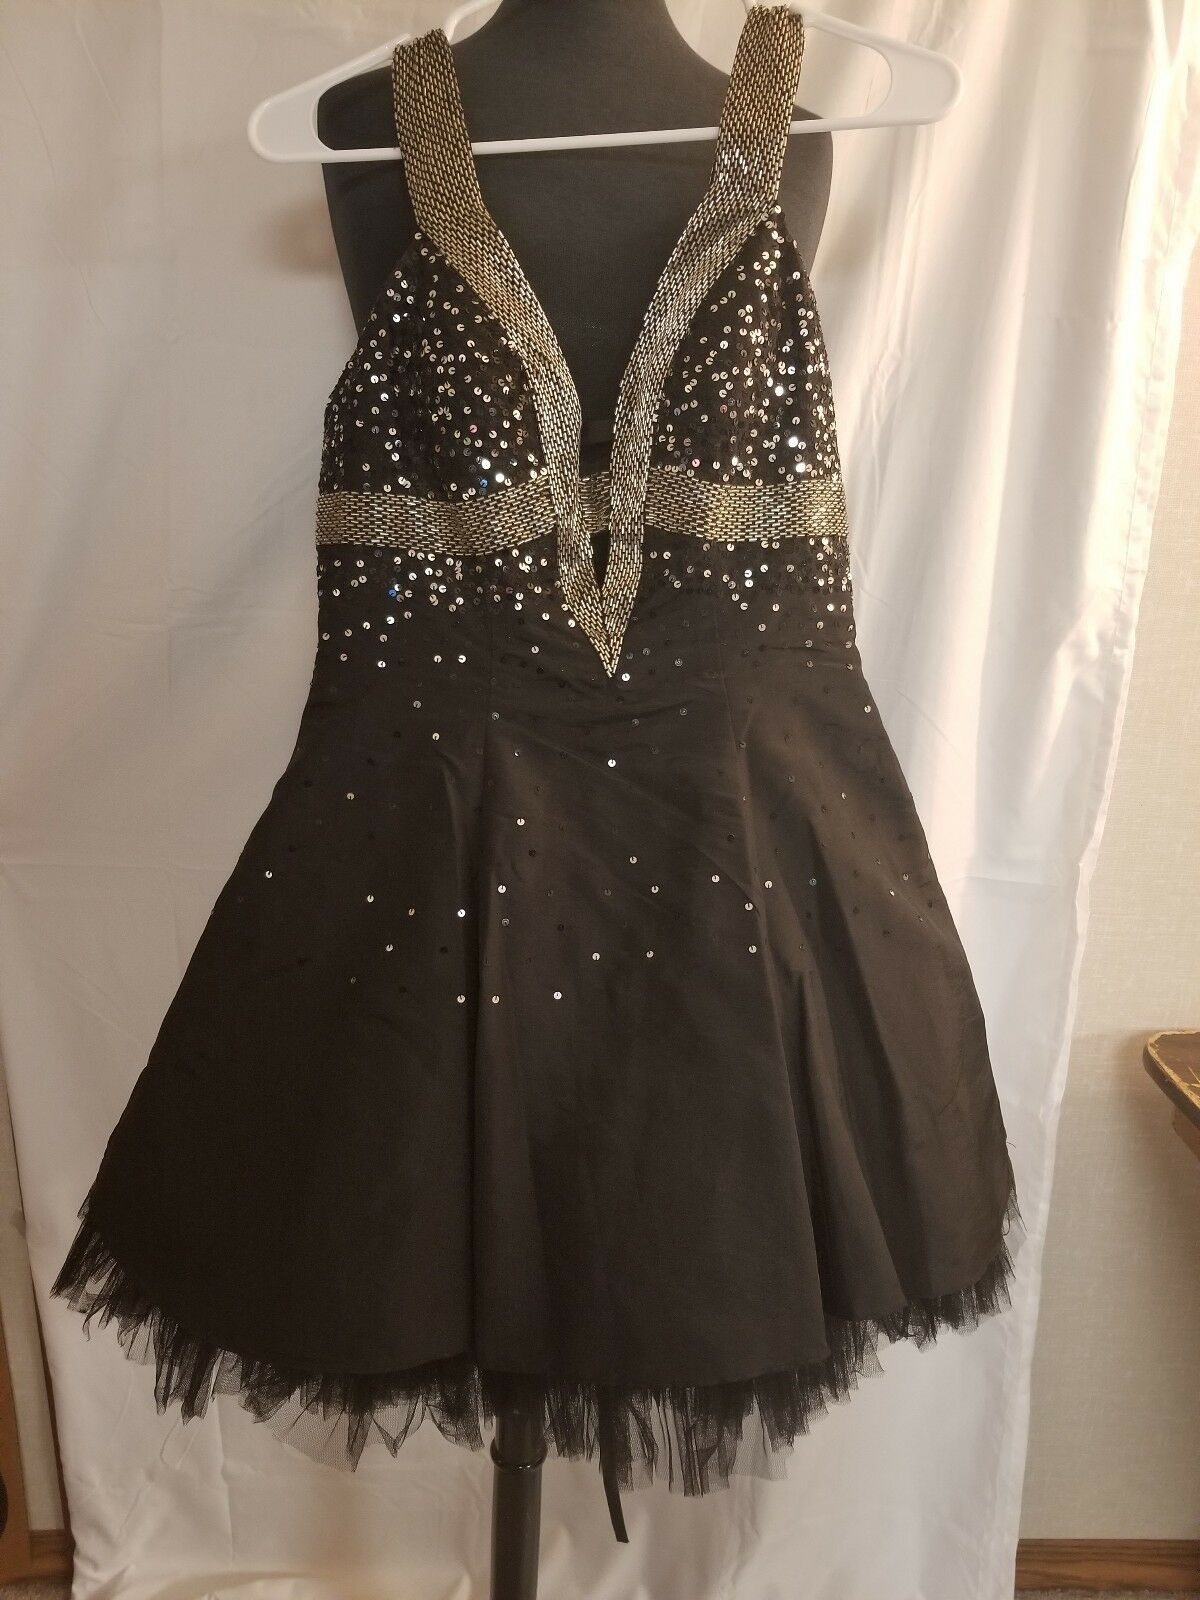 Chicas Short Prom Dress Black and Silver Low Front and Back Opening Size Small!!